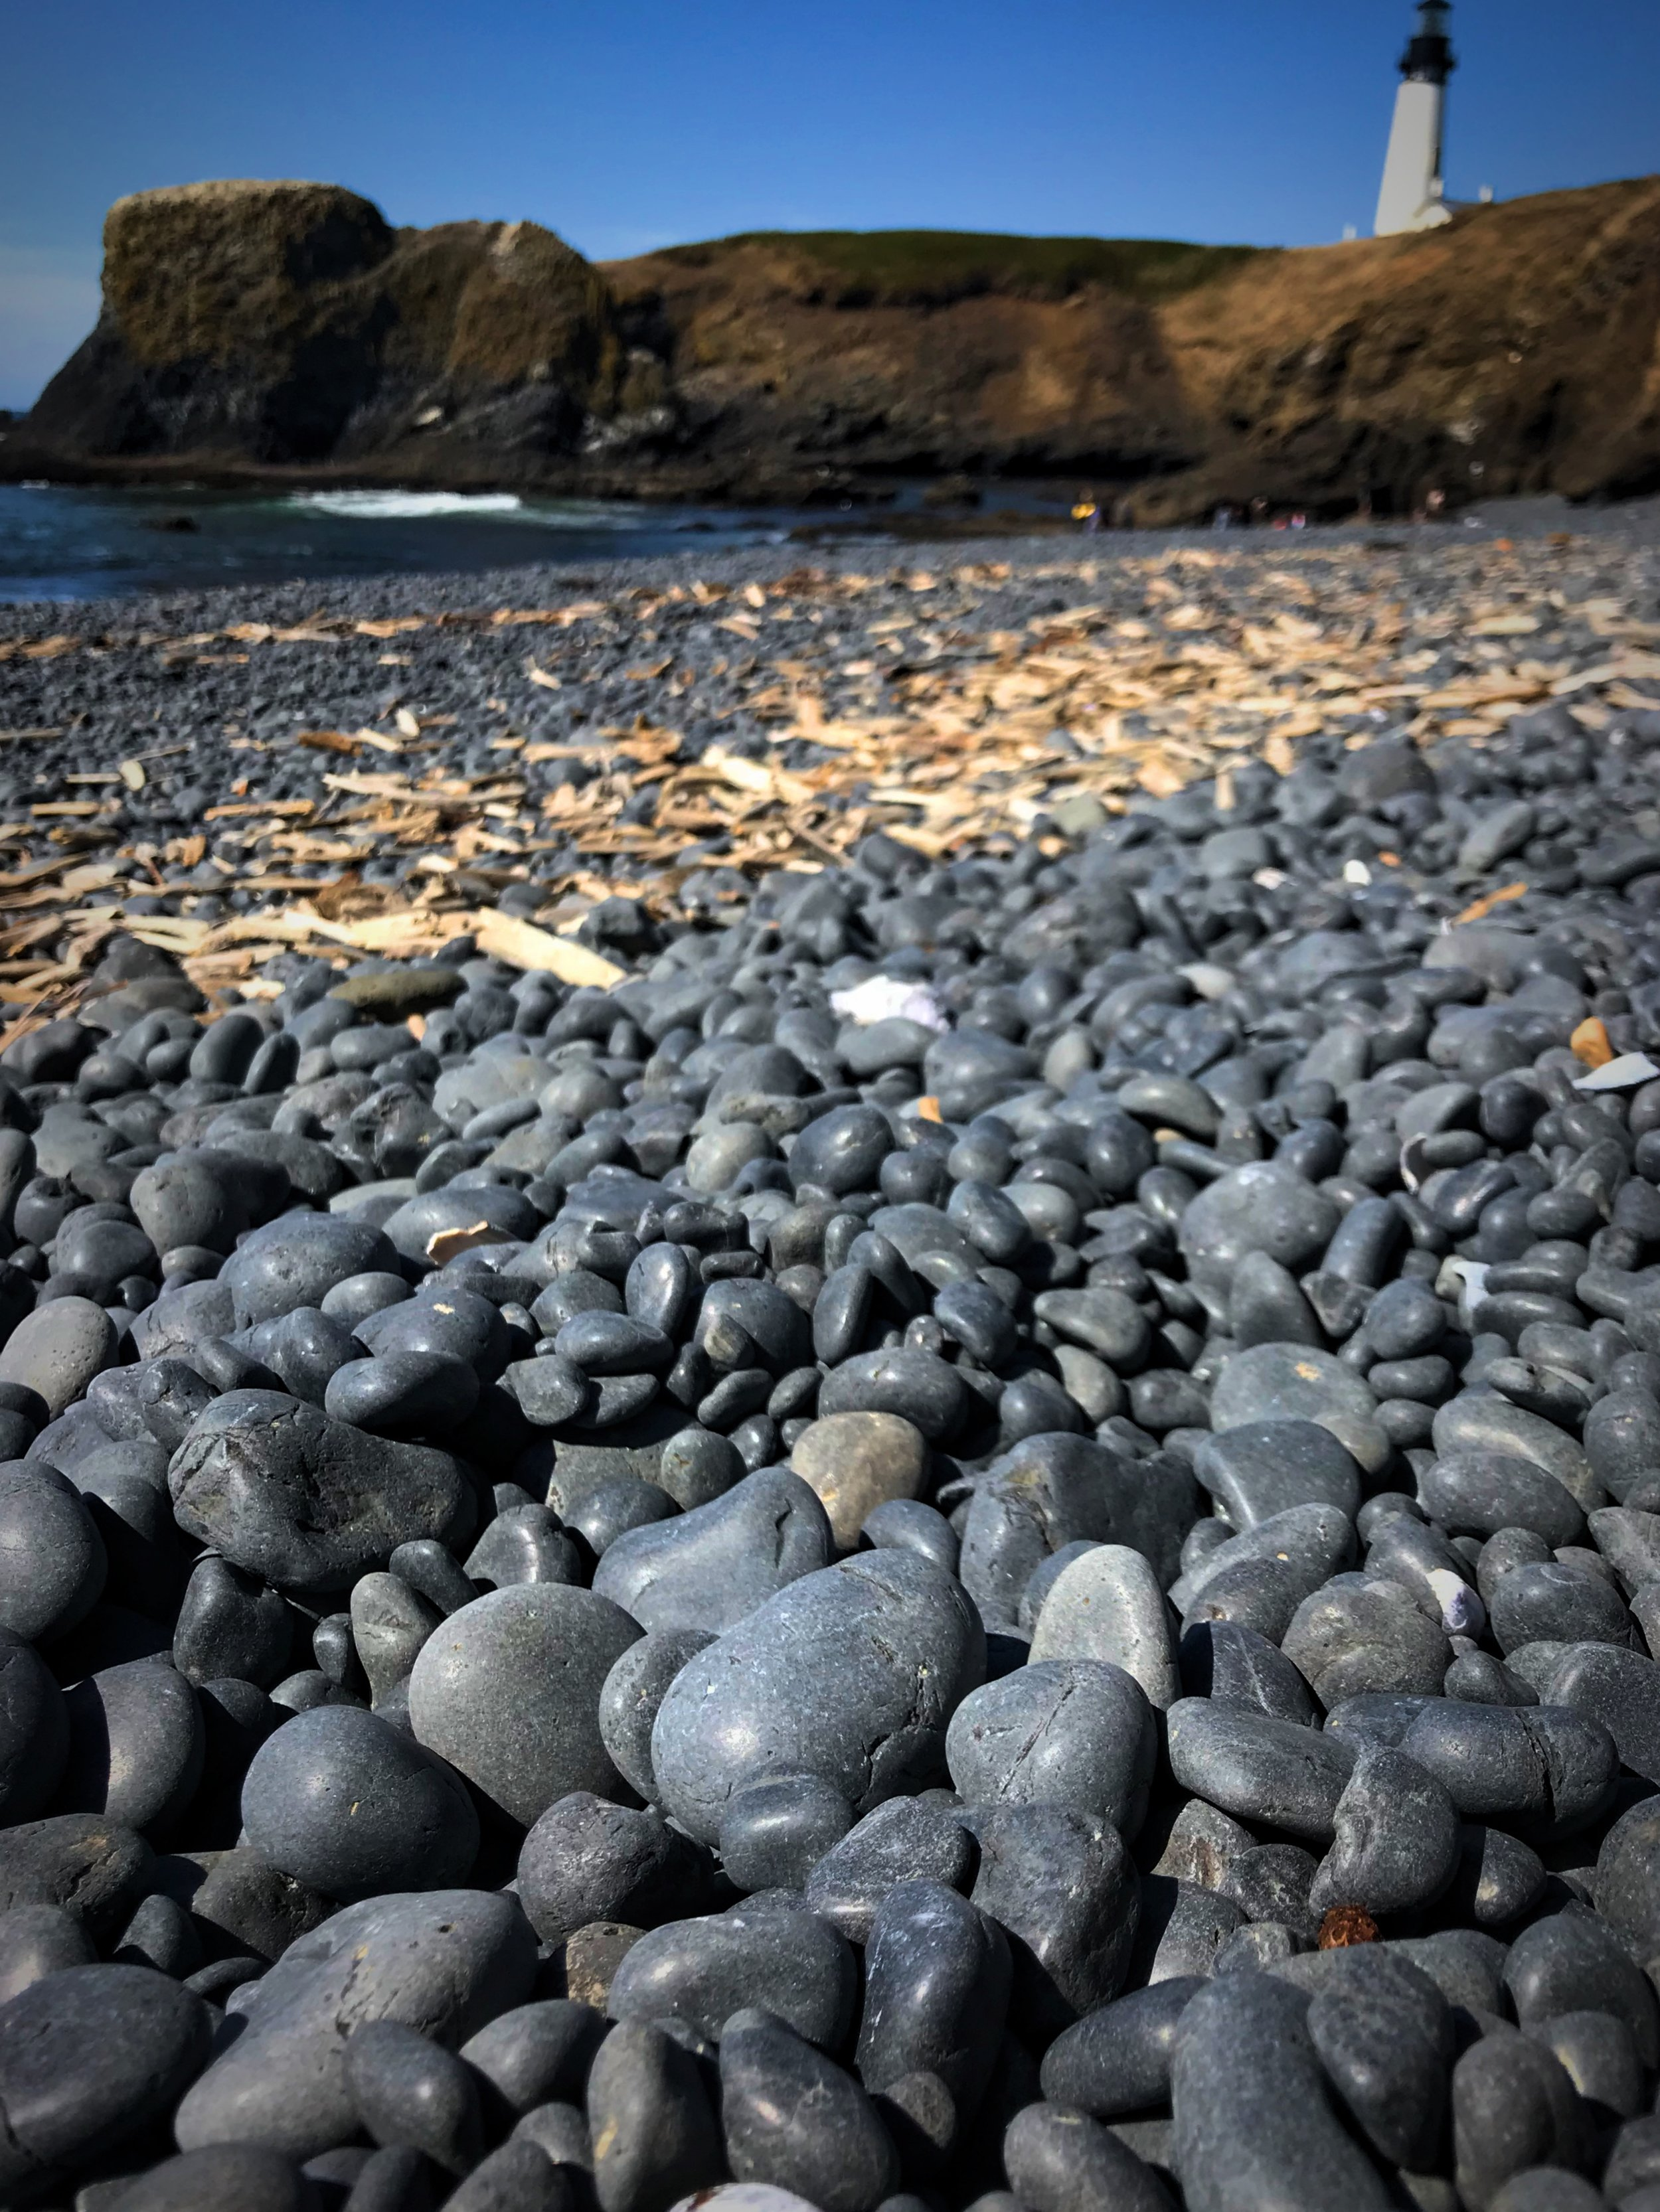 Don't take rocks with you. If a thousand visitor each took only one rock, the beach would disappear in a matter of years.